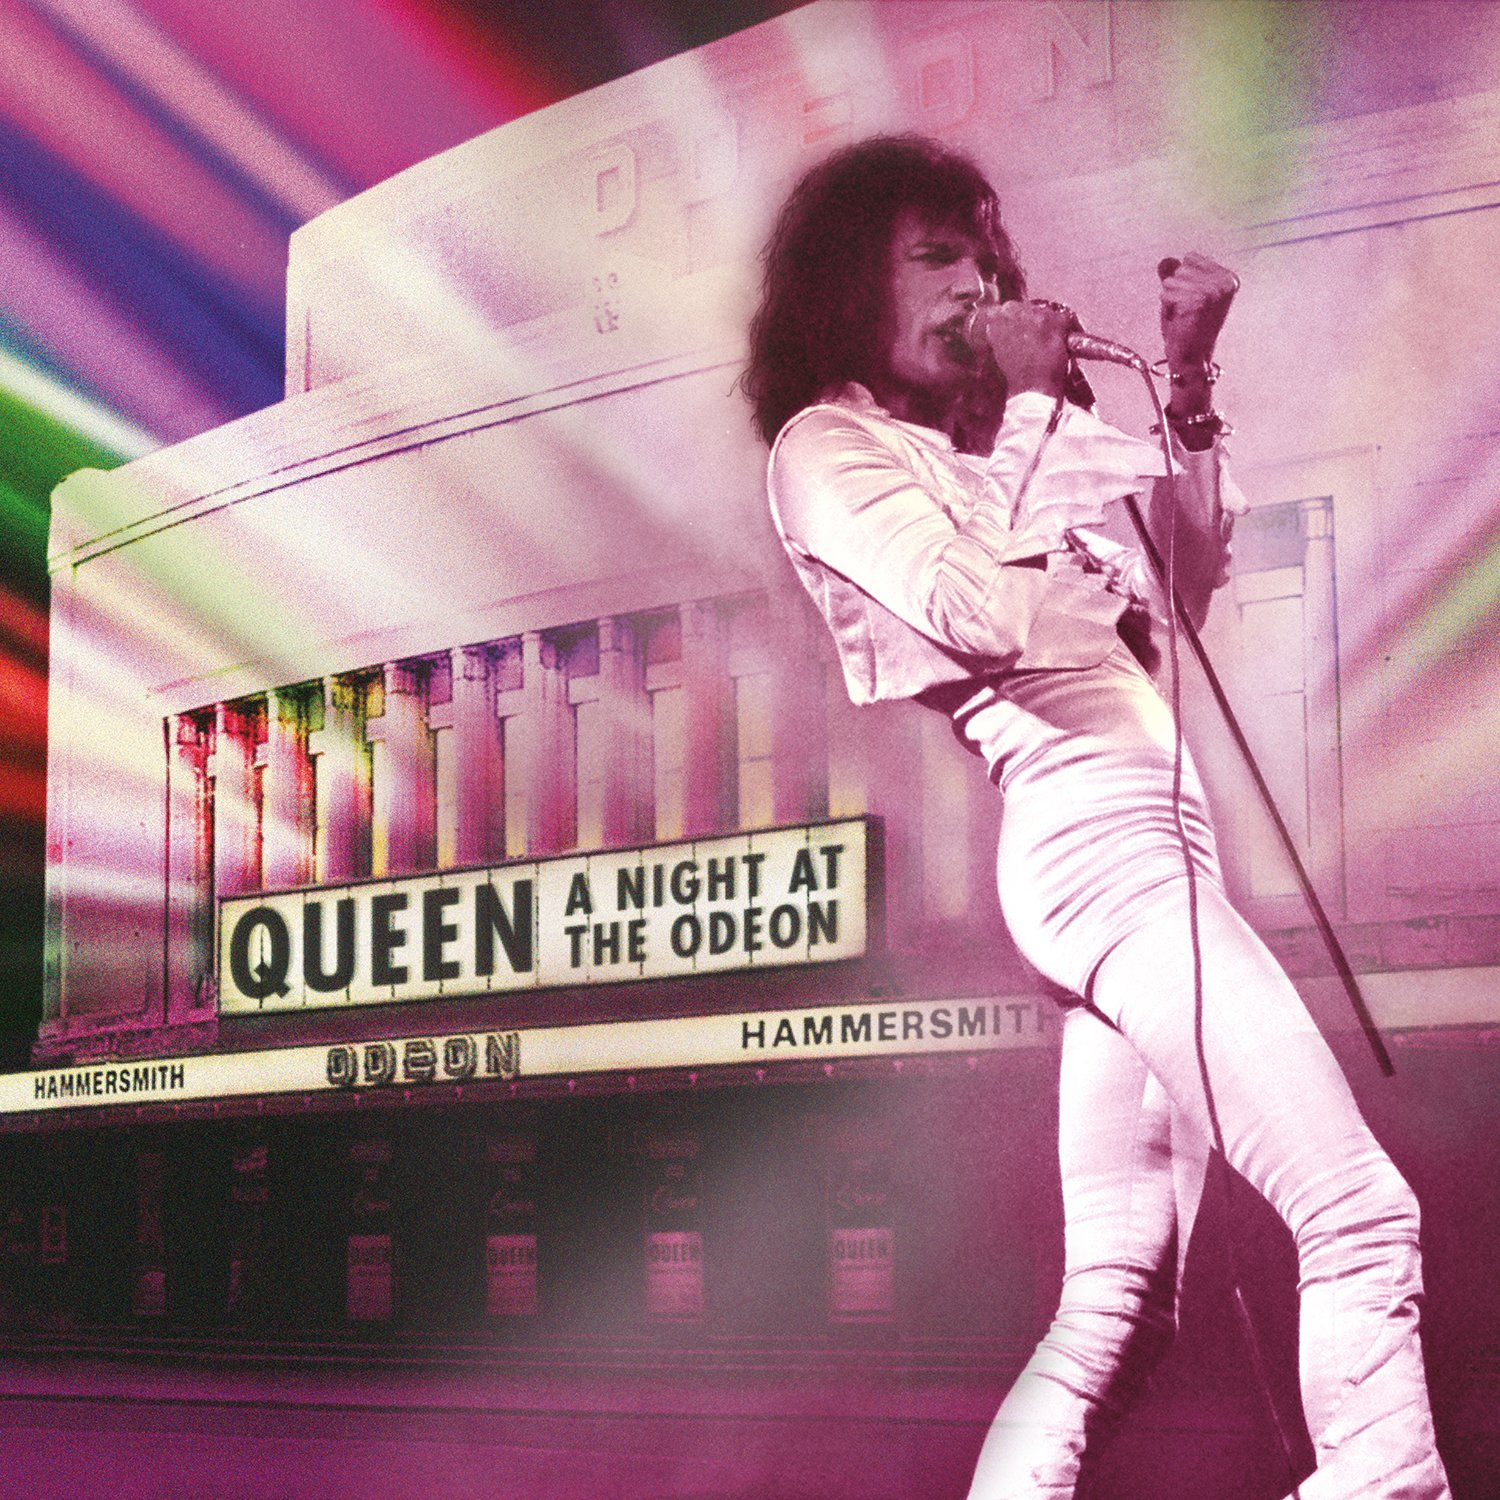 File:Queen a night at the odeon 1975.jpg